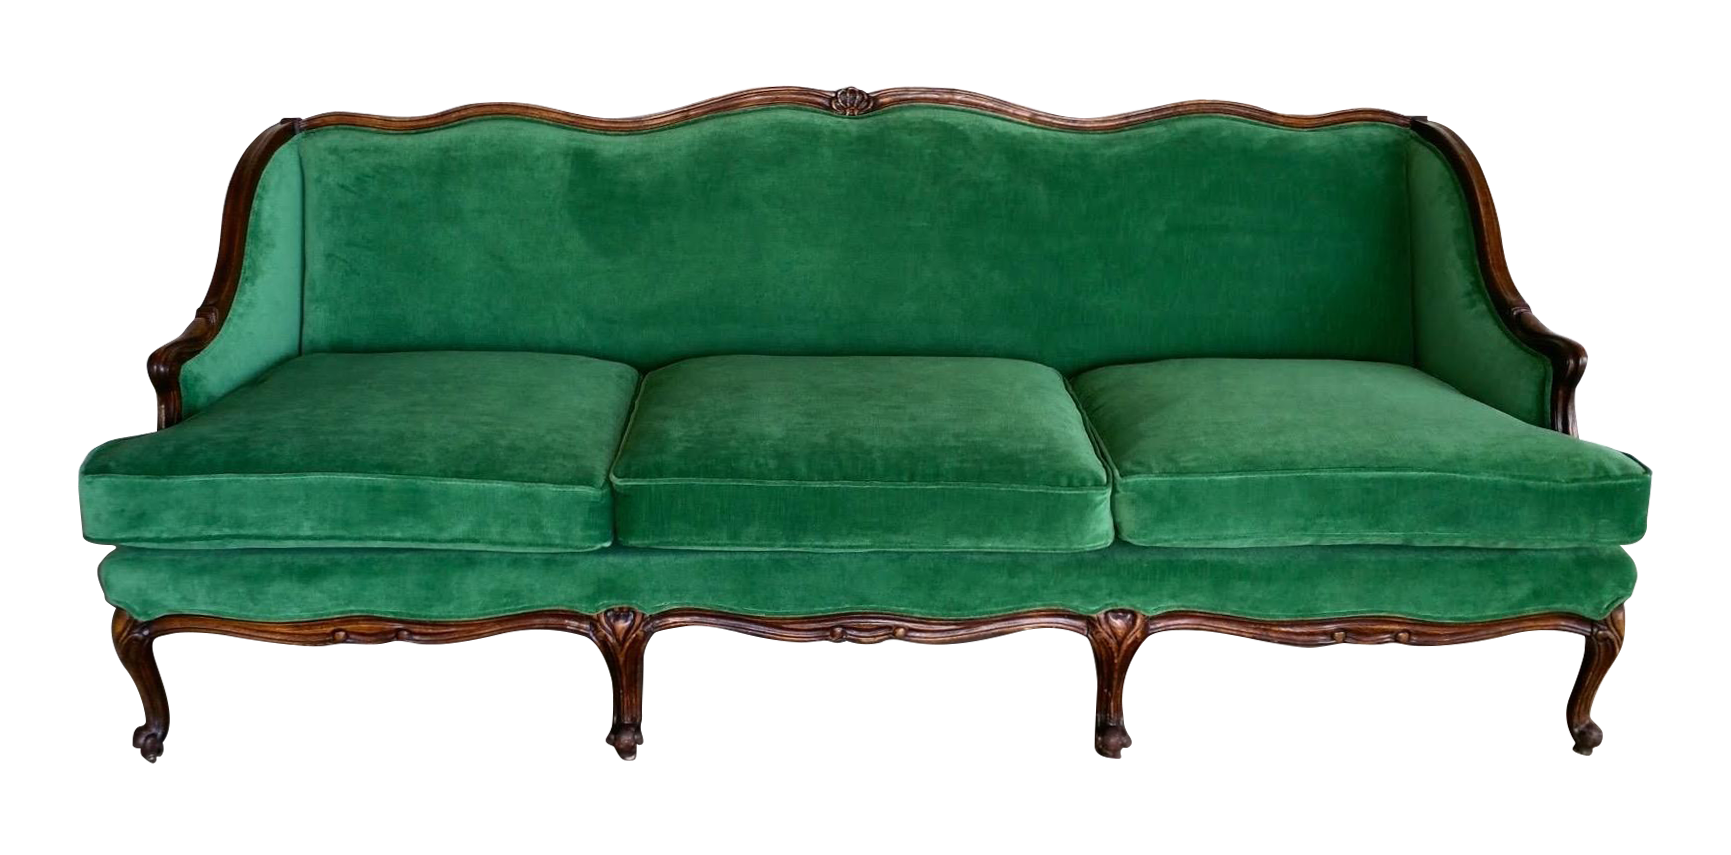 Gorgeous Emerald Green Velvet Sofa, Newly Upholstered. Bergere Style With Wood  Trim All Around.